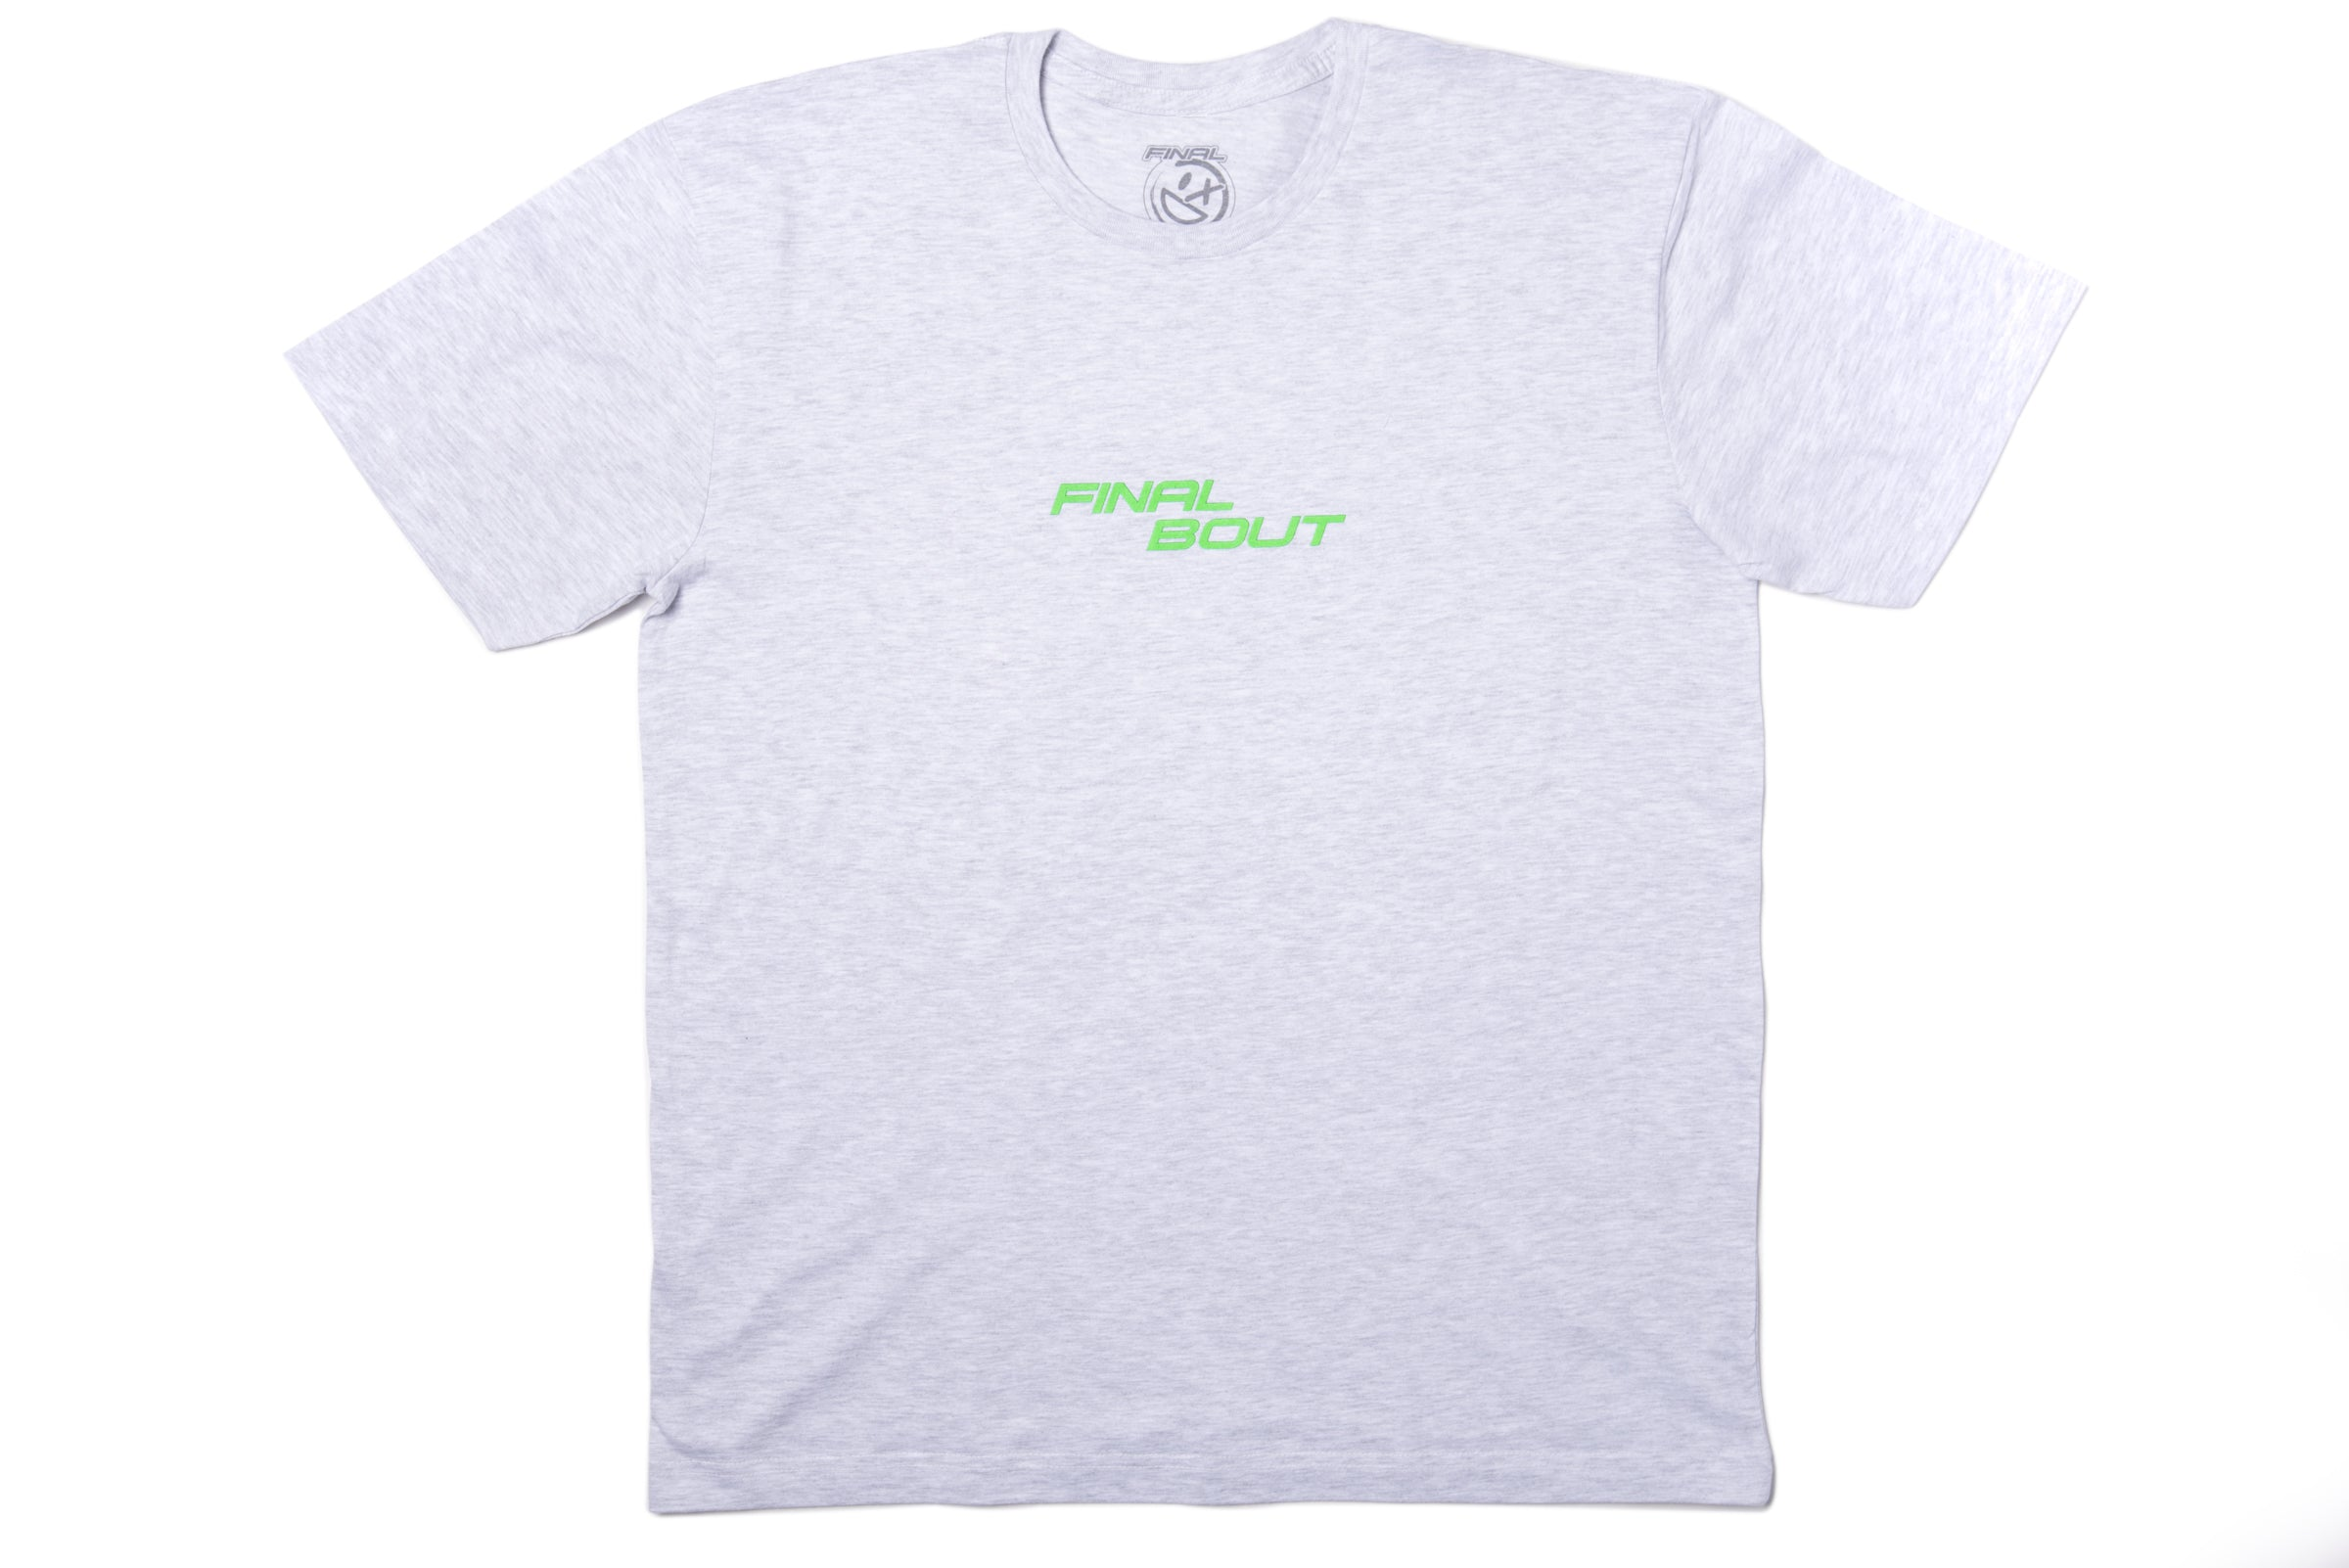 Final Bout Logo Tee [Grey/Neon Green print]